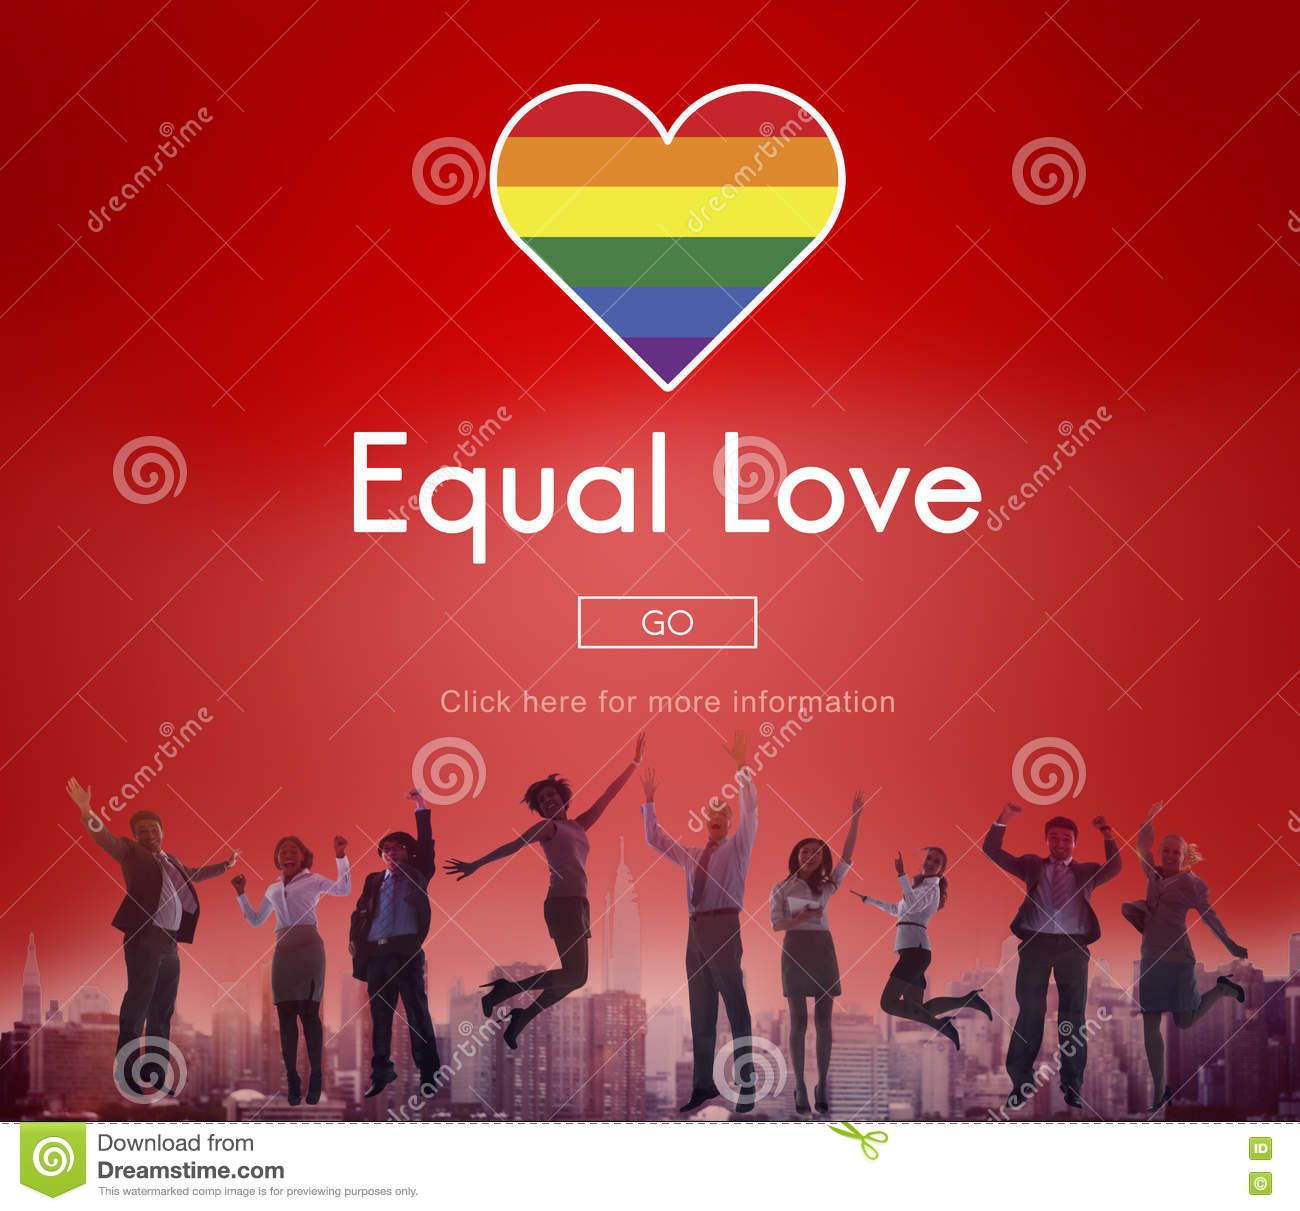 equal rights for lgbt Around the world, lesbian, gay, bisexual, transgender, and intersex (lgbti) people face discrimination in almost all aspects of their lives they are denied access to employment, education, and health care they are targeted for attacks solely because of their gender expression or perceived.